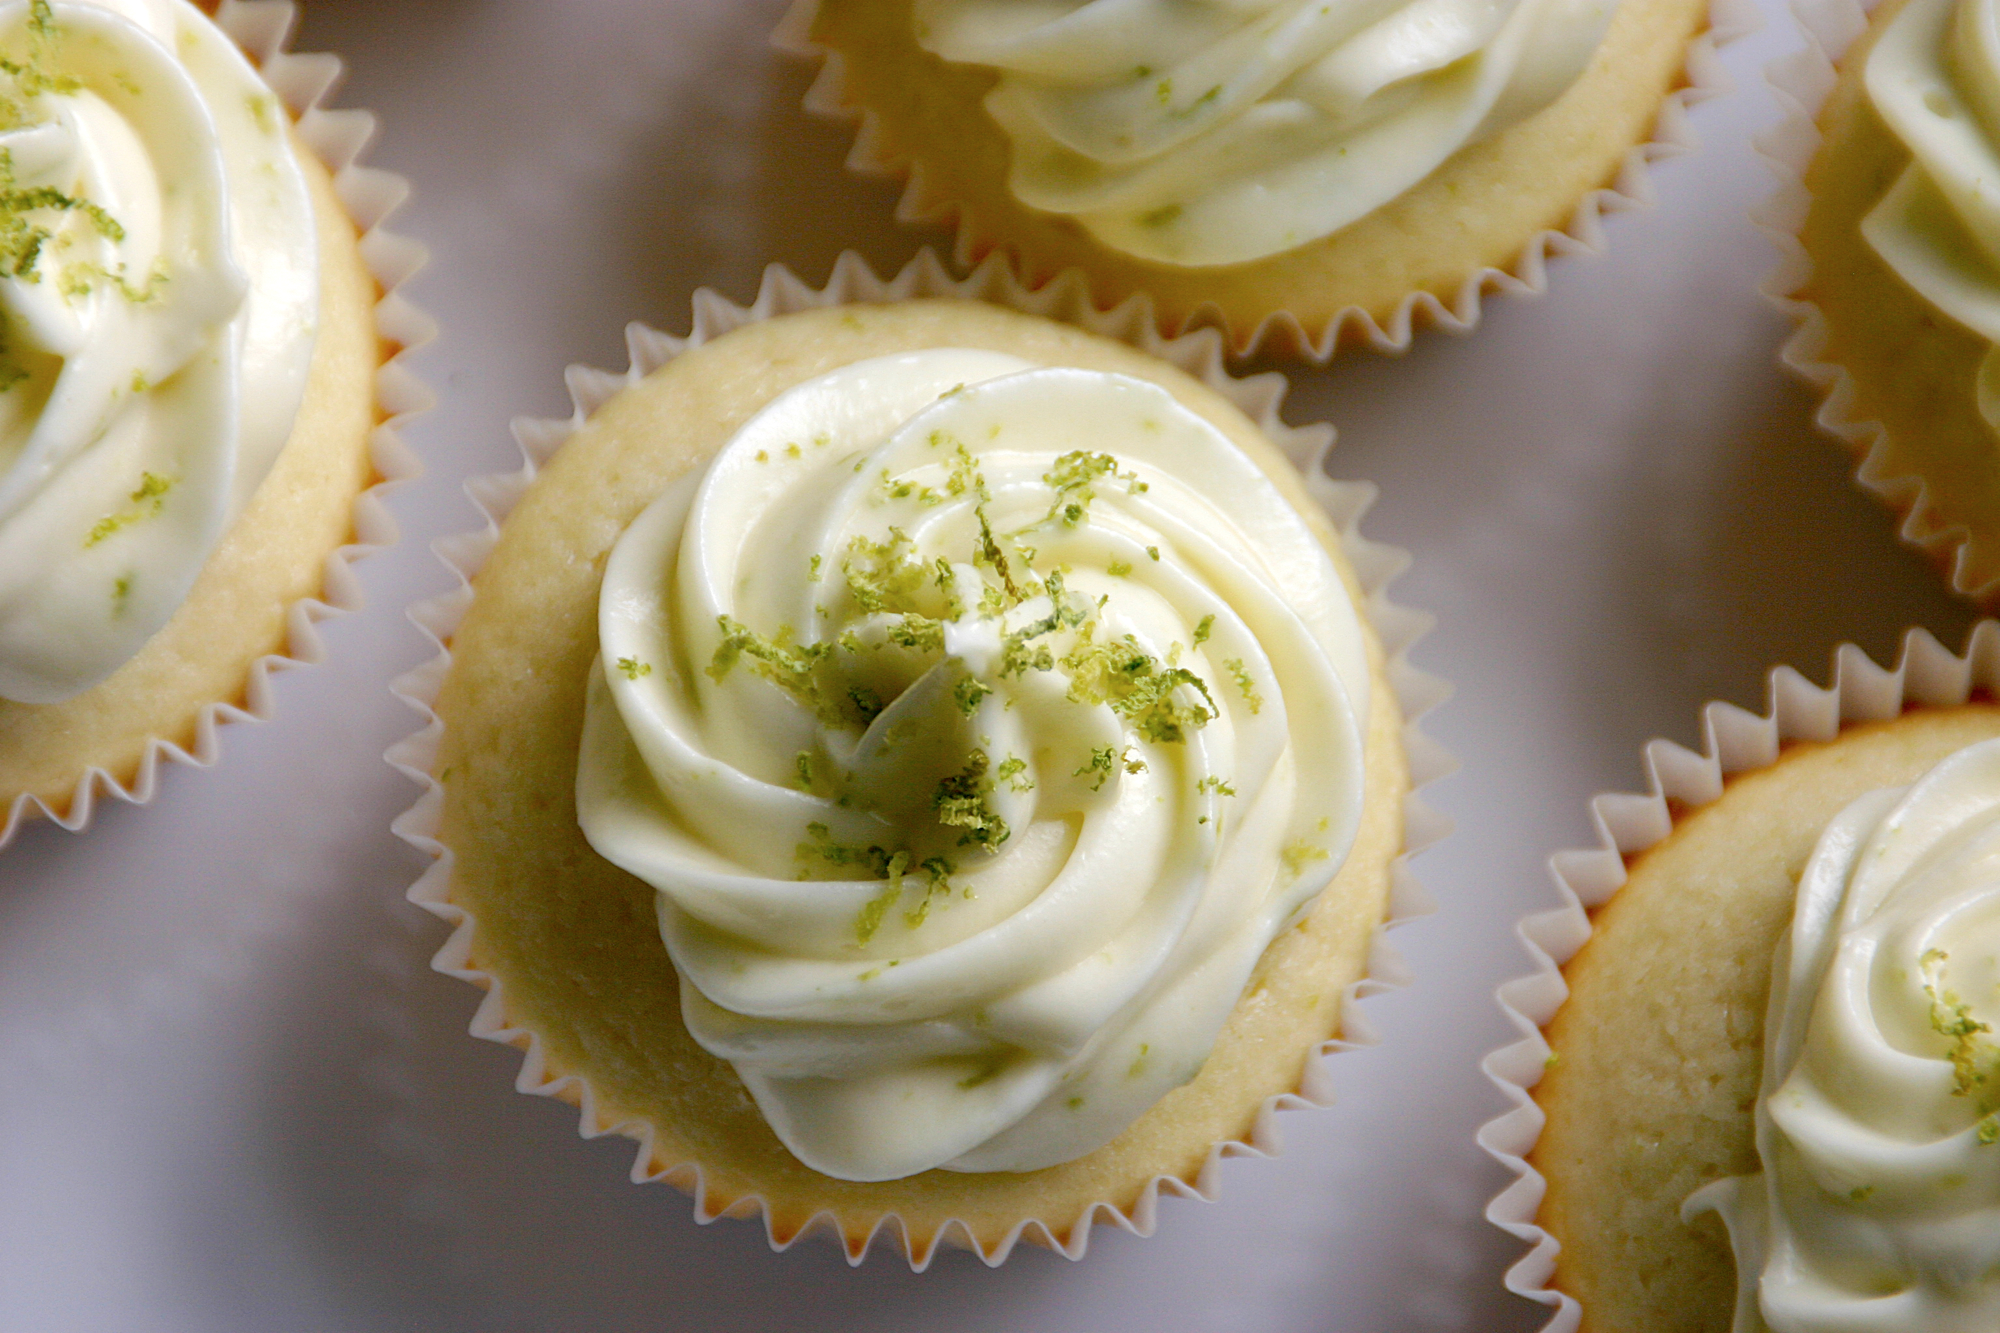 From The Kitchen: Key Lime Pie Cupcakes